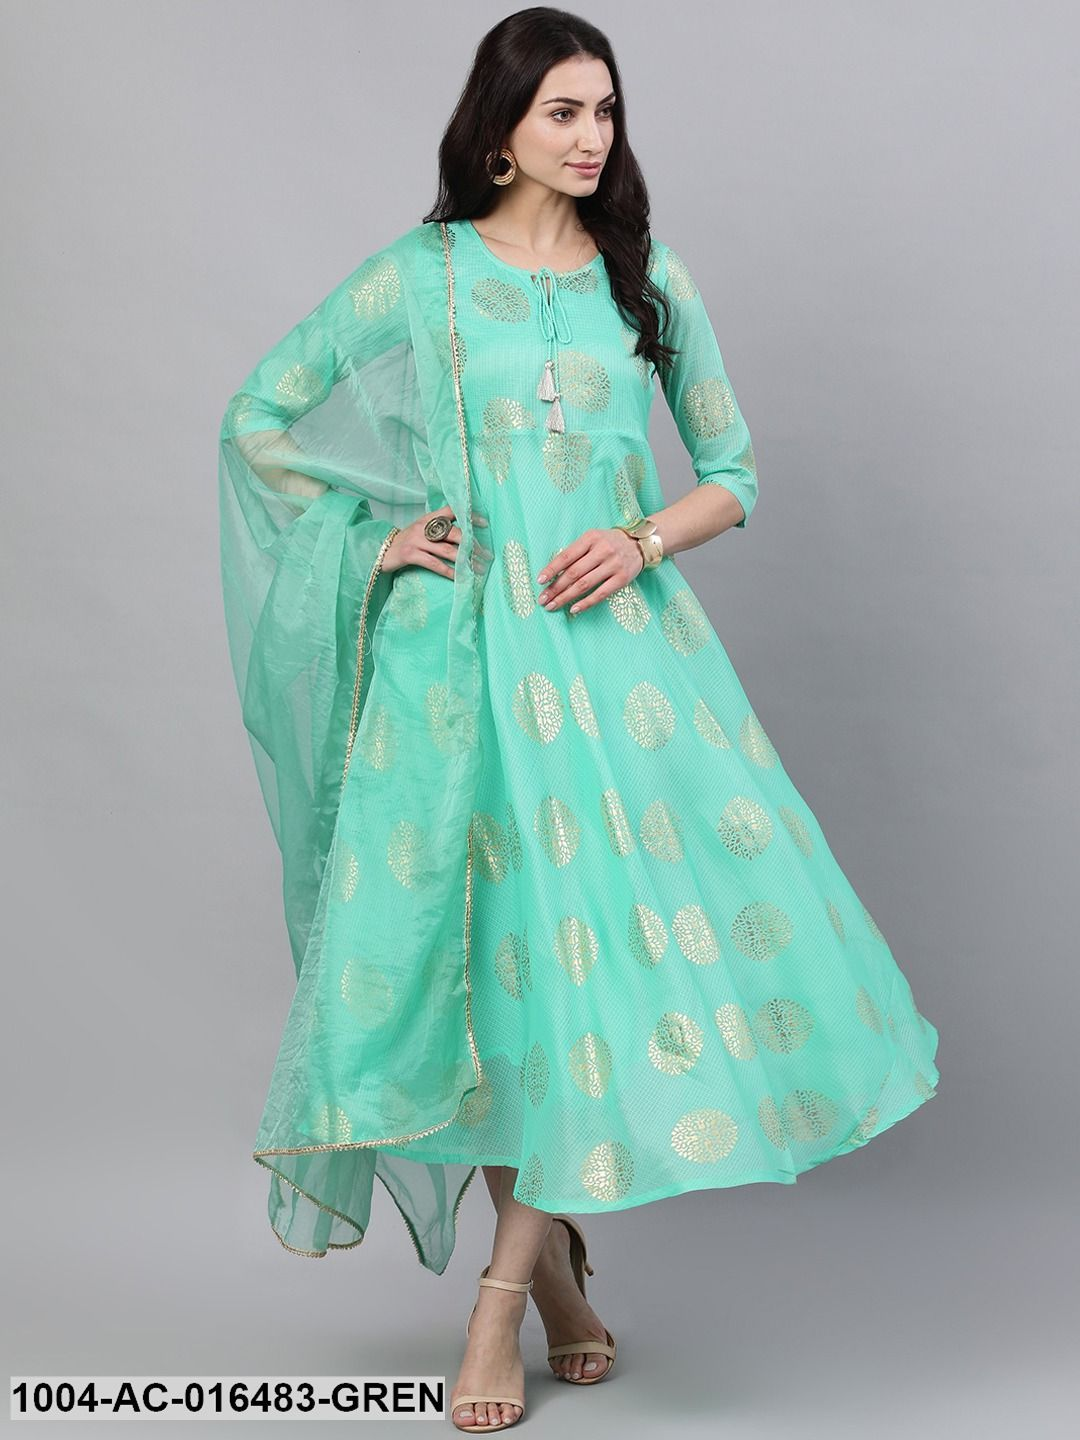 Green Ethnic Motifs Printed Tie-Up Neck Cotton Maxi Dress With Dupatta